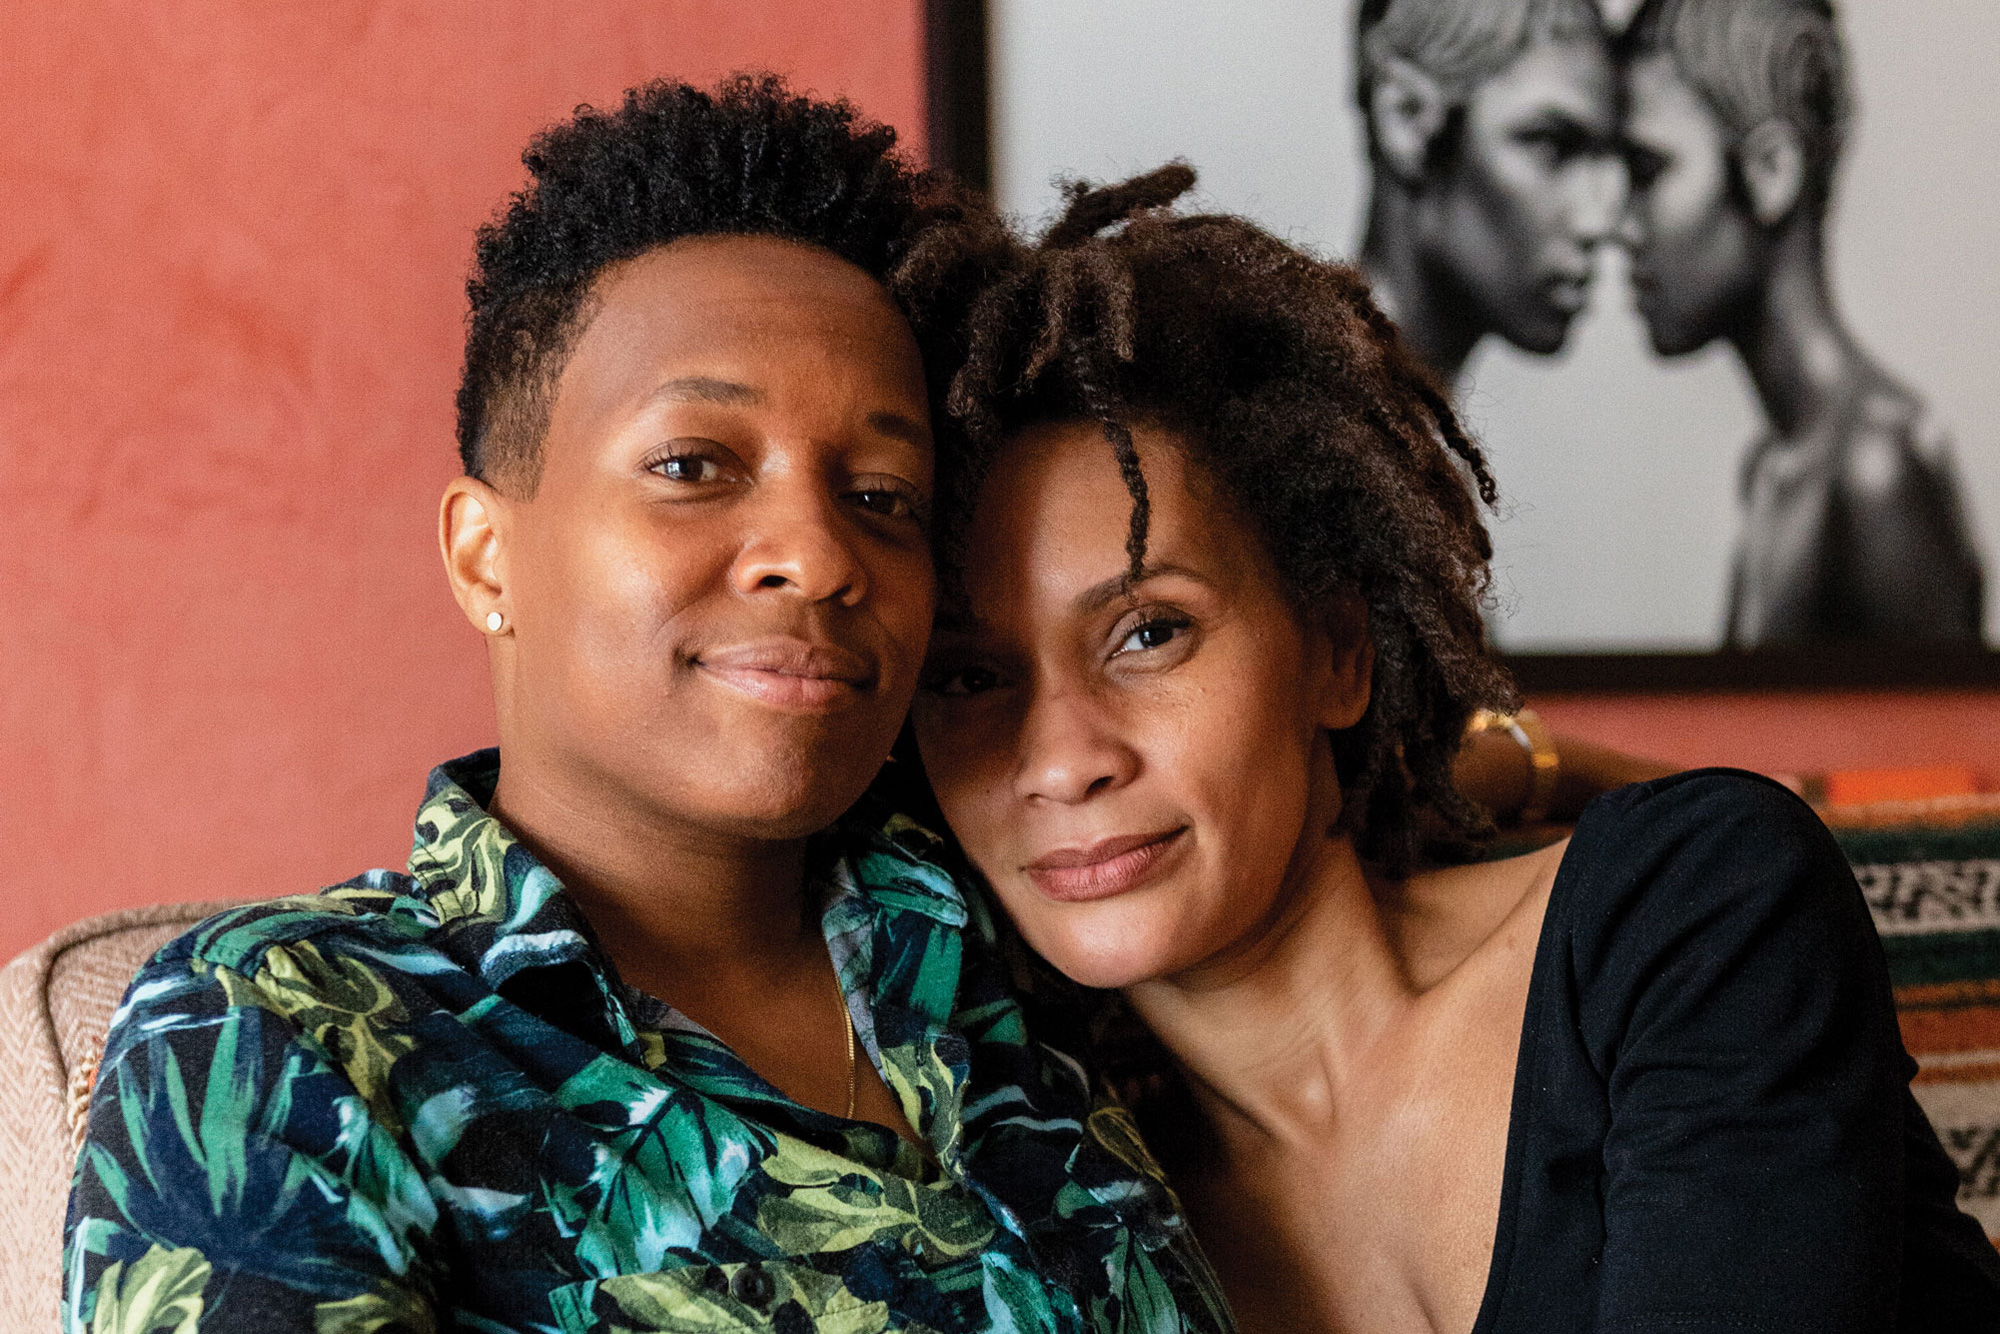 photo of wives Ayanah Moor and Jamila Raegan, two Black queer women, one with a short haircut and one with locs, in their Chicago home